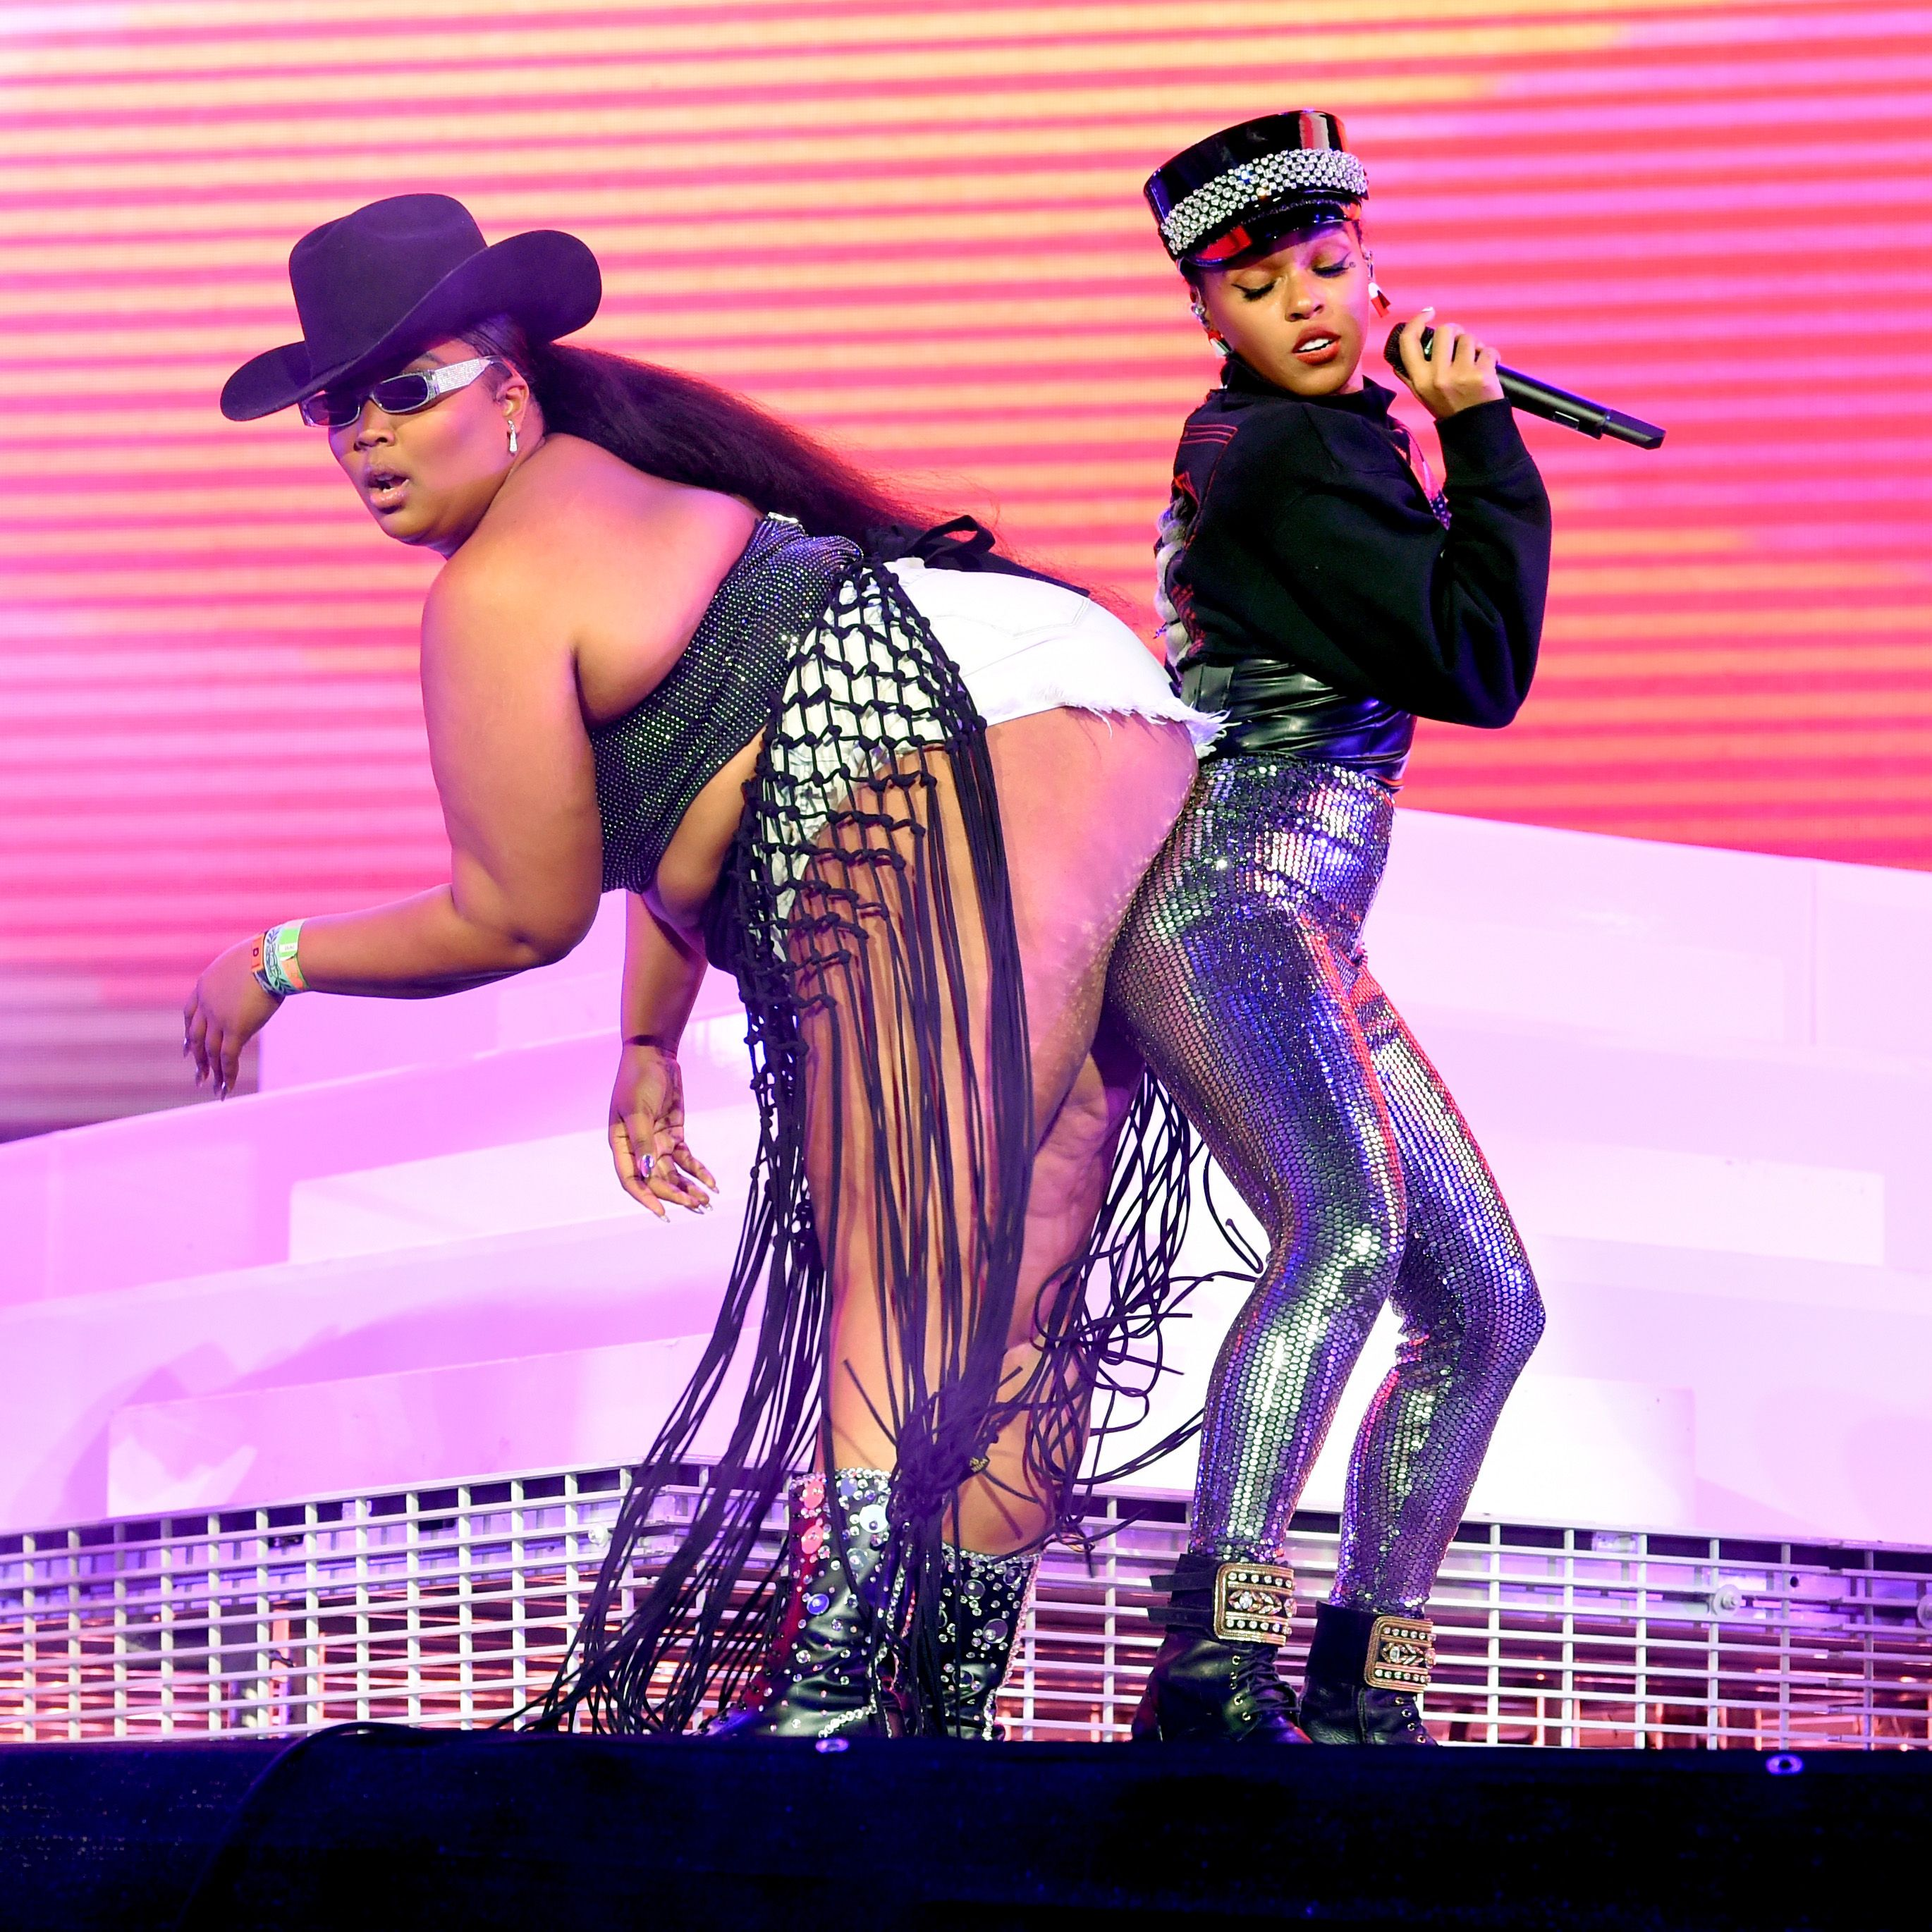 Find Someone Who Supports You Like Janelle Monae Supports Lizzo